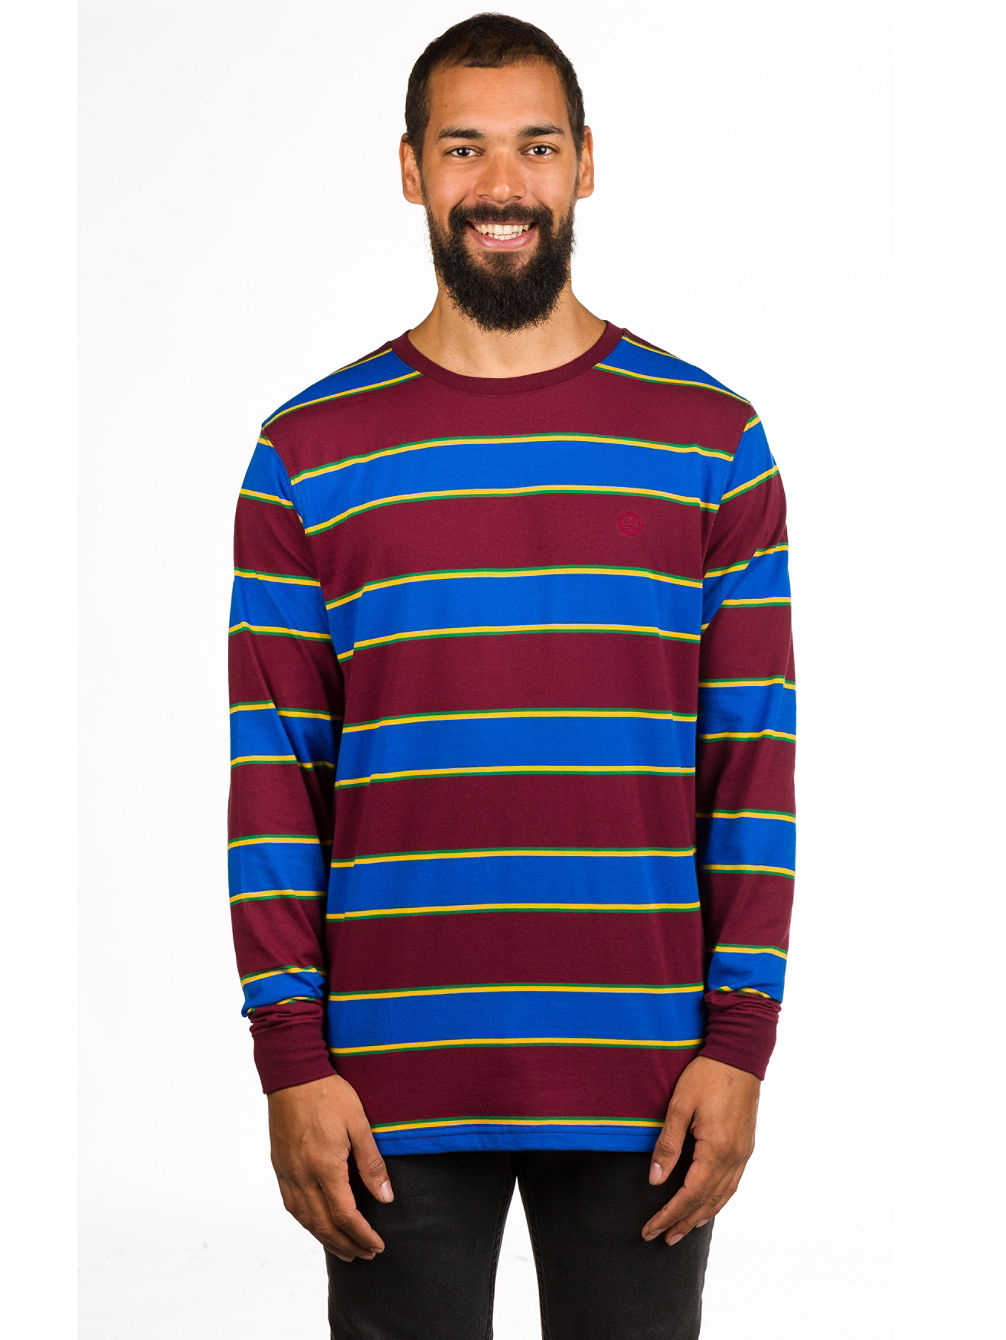 Buy Empyre Recon Striped Sweater online at blue-tomato.com